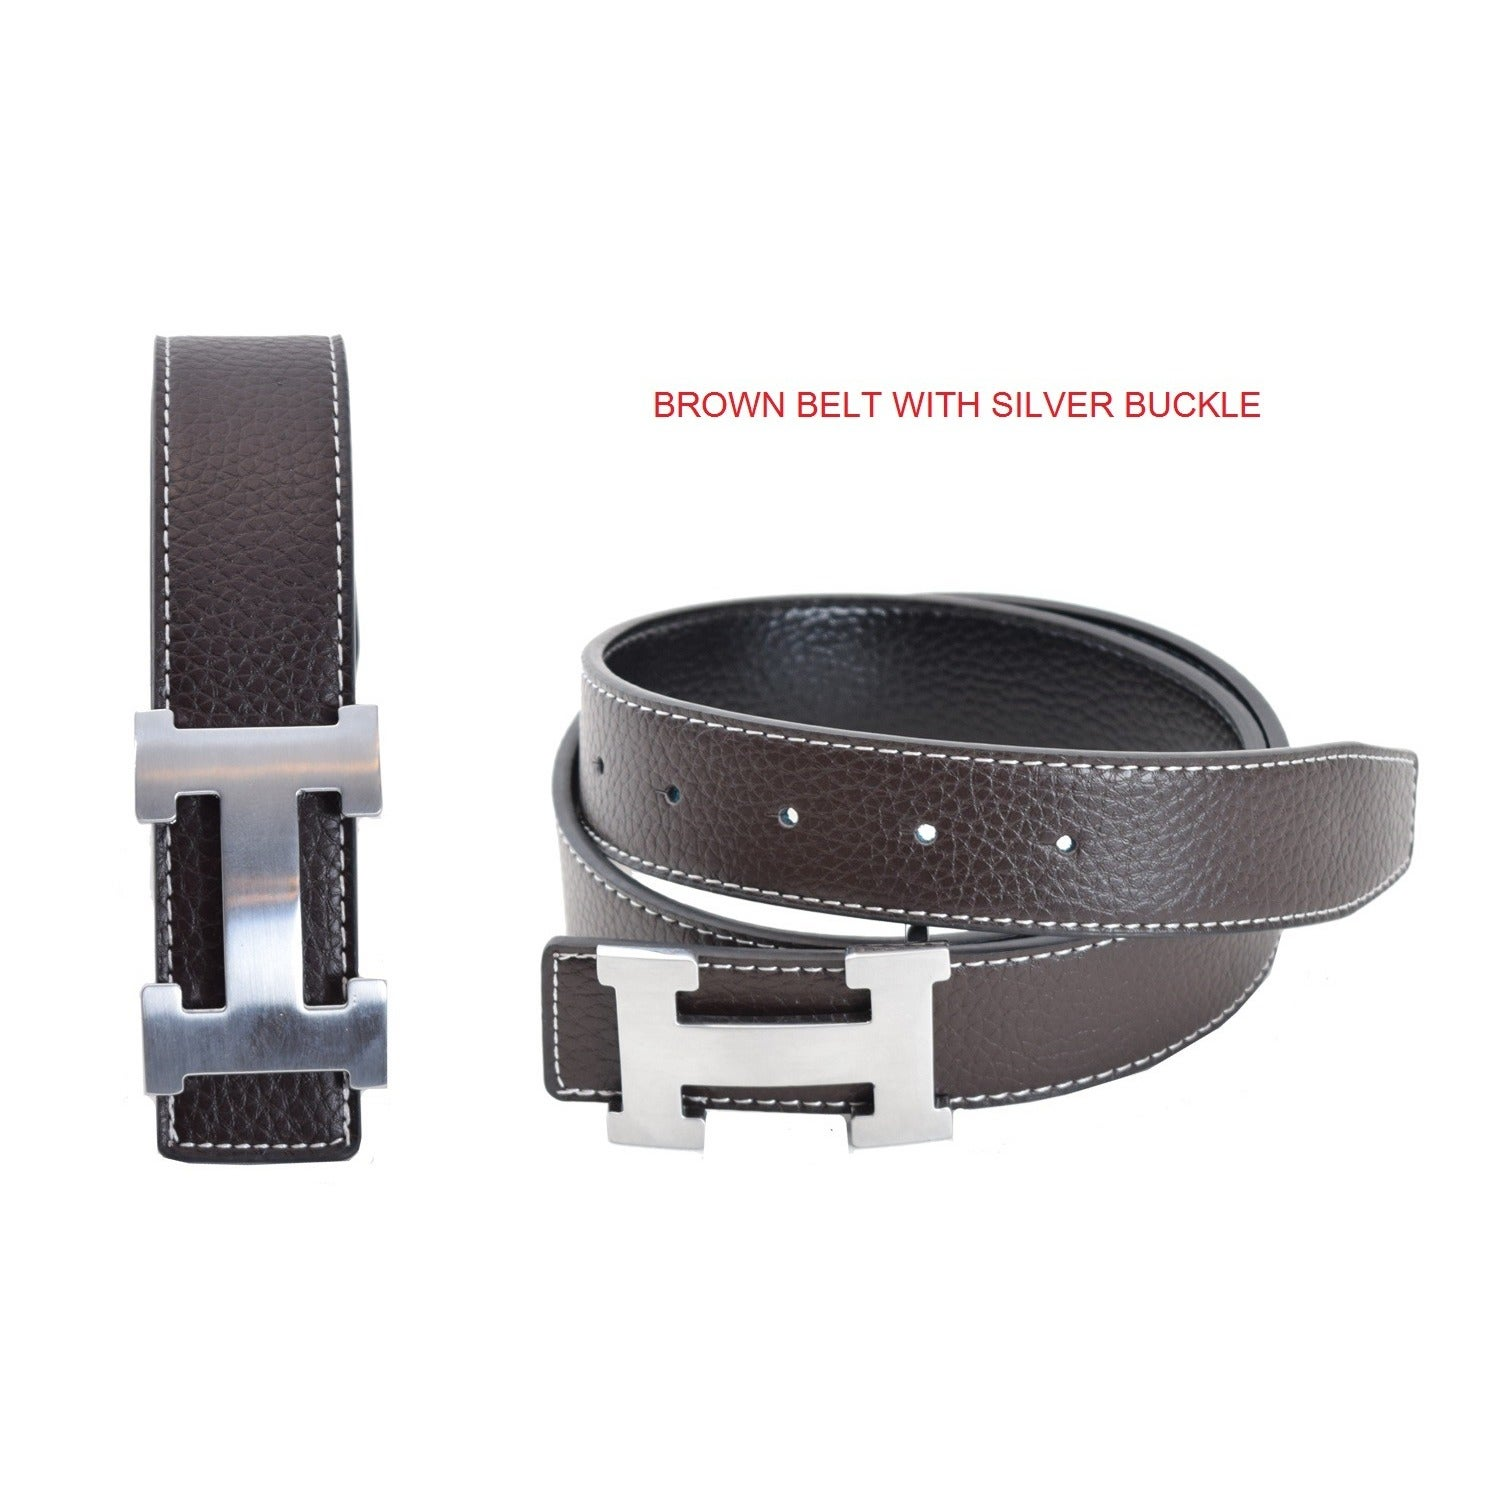 97bfbe330e2 Shop Unisex H-design Reversible Belt with Removable Buckle - On Sale - Free  Shipping On Orders Over  45 - Overstock - 15096364